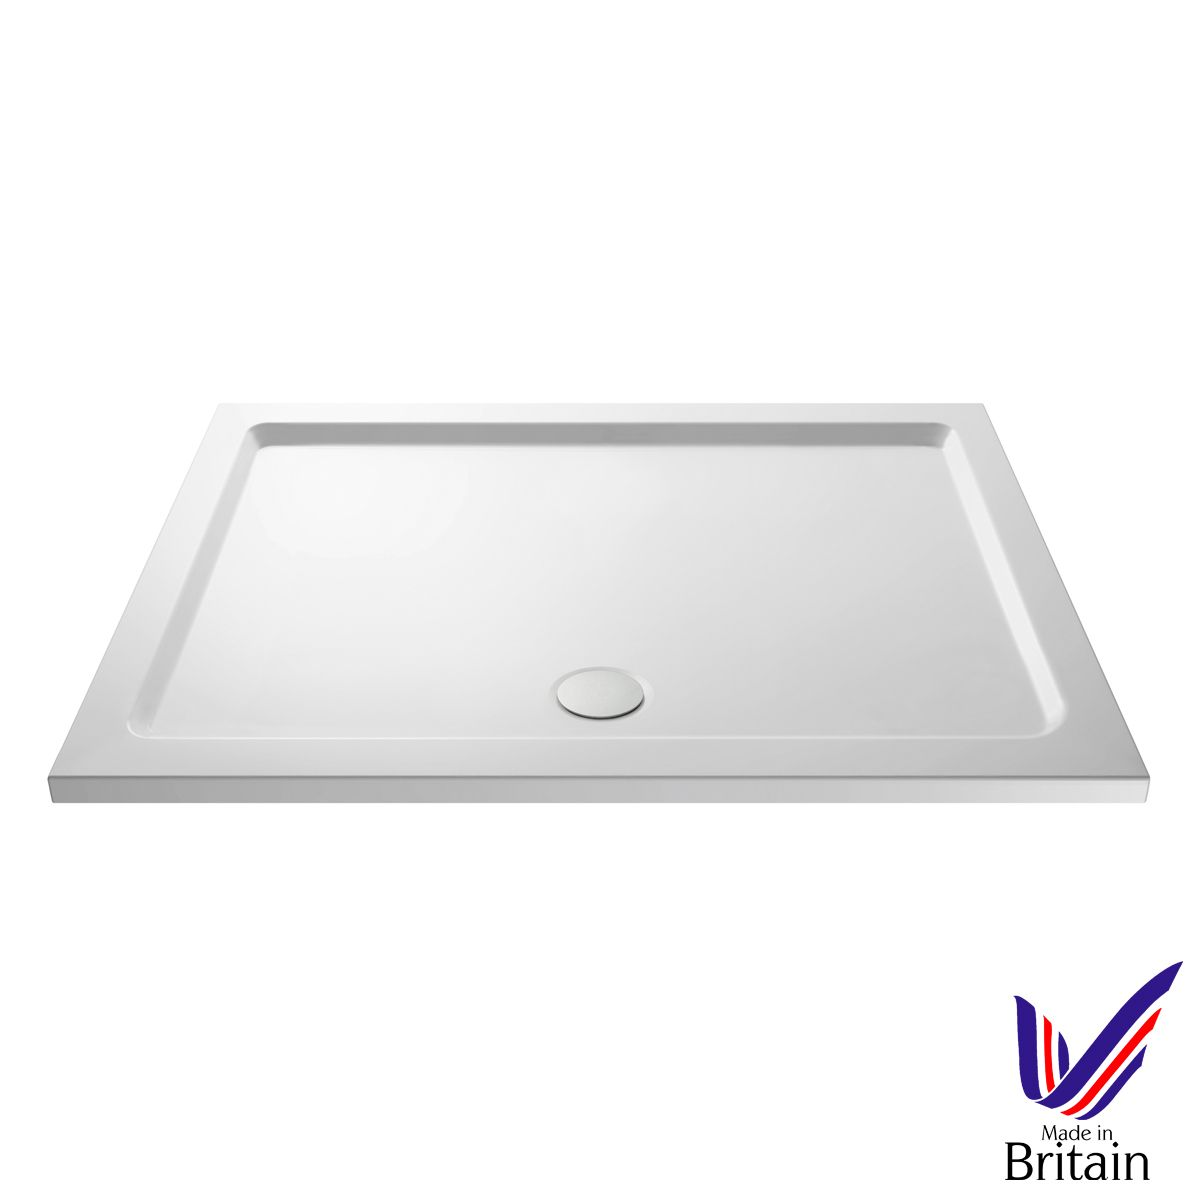 1500 x 760 Shower Tray Rectangular Low Profile by Pearlstone